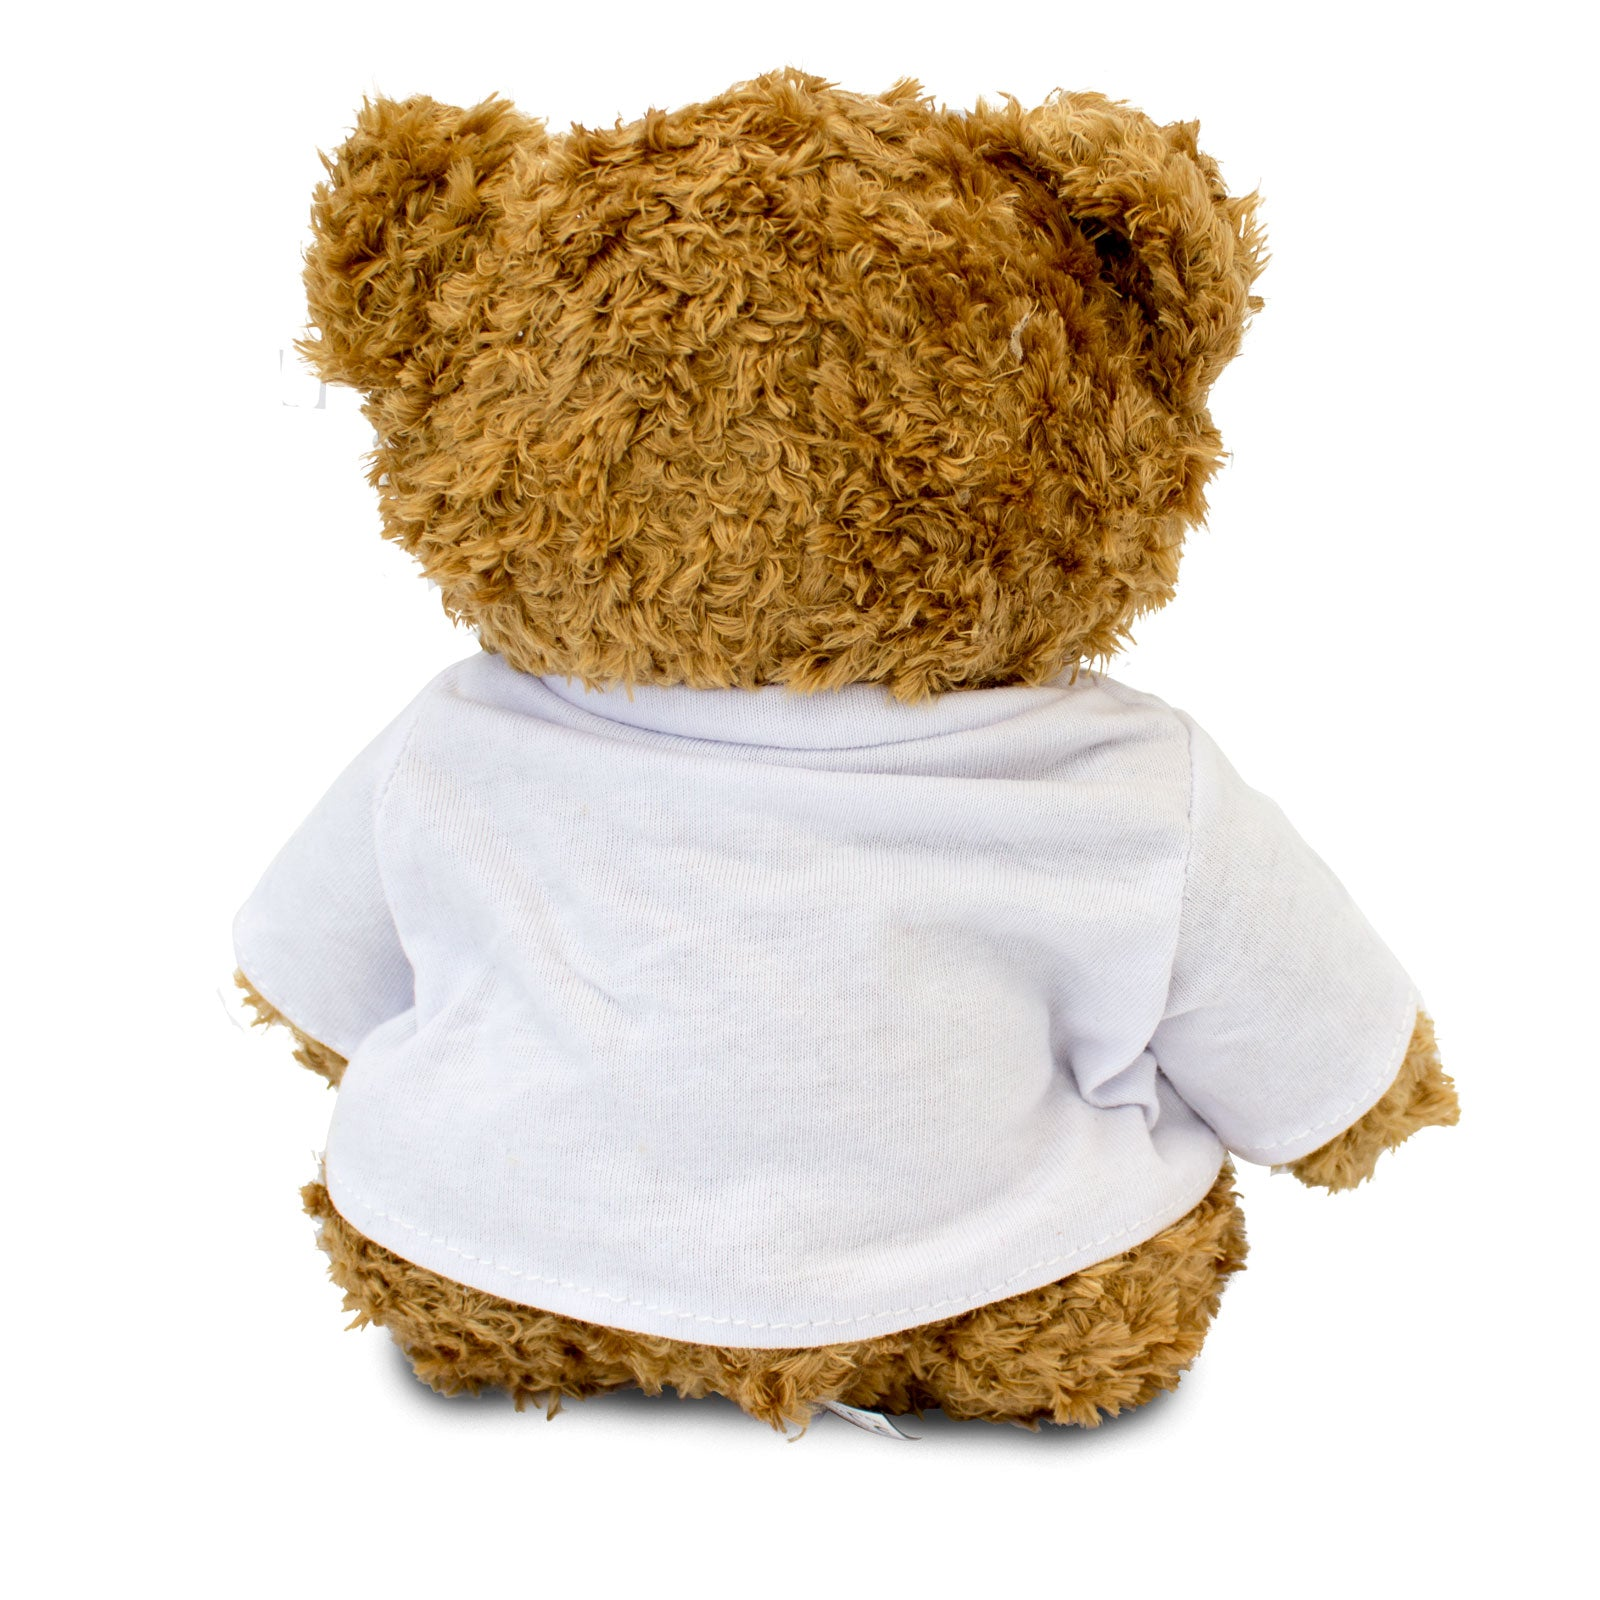 Get Well Soon Gianni - Teddy Bear